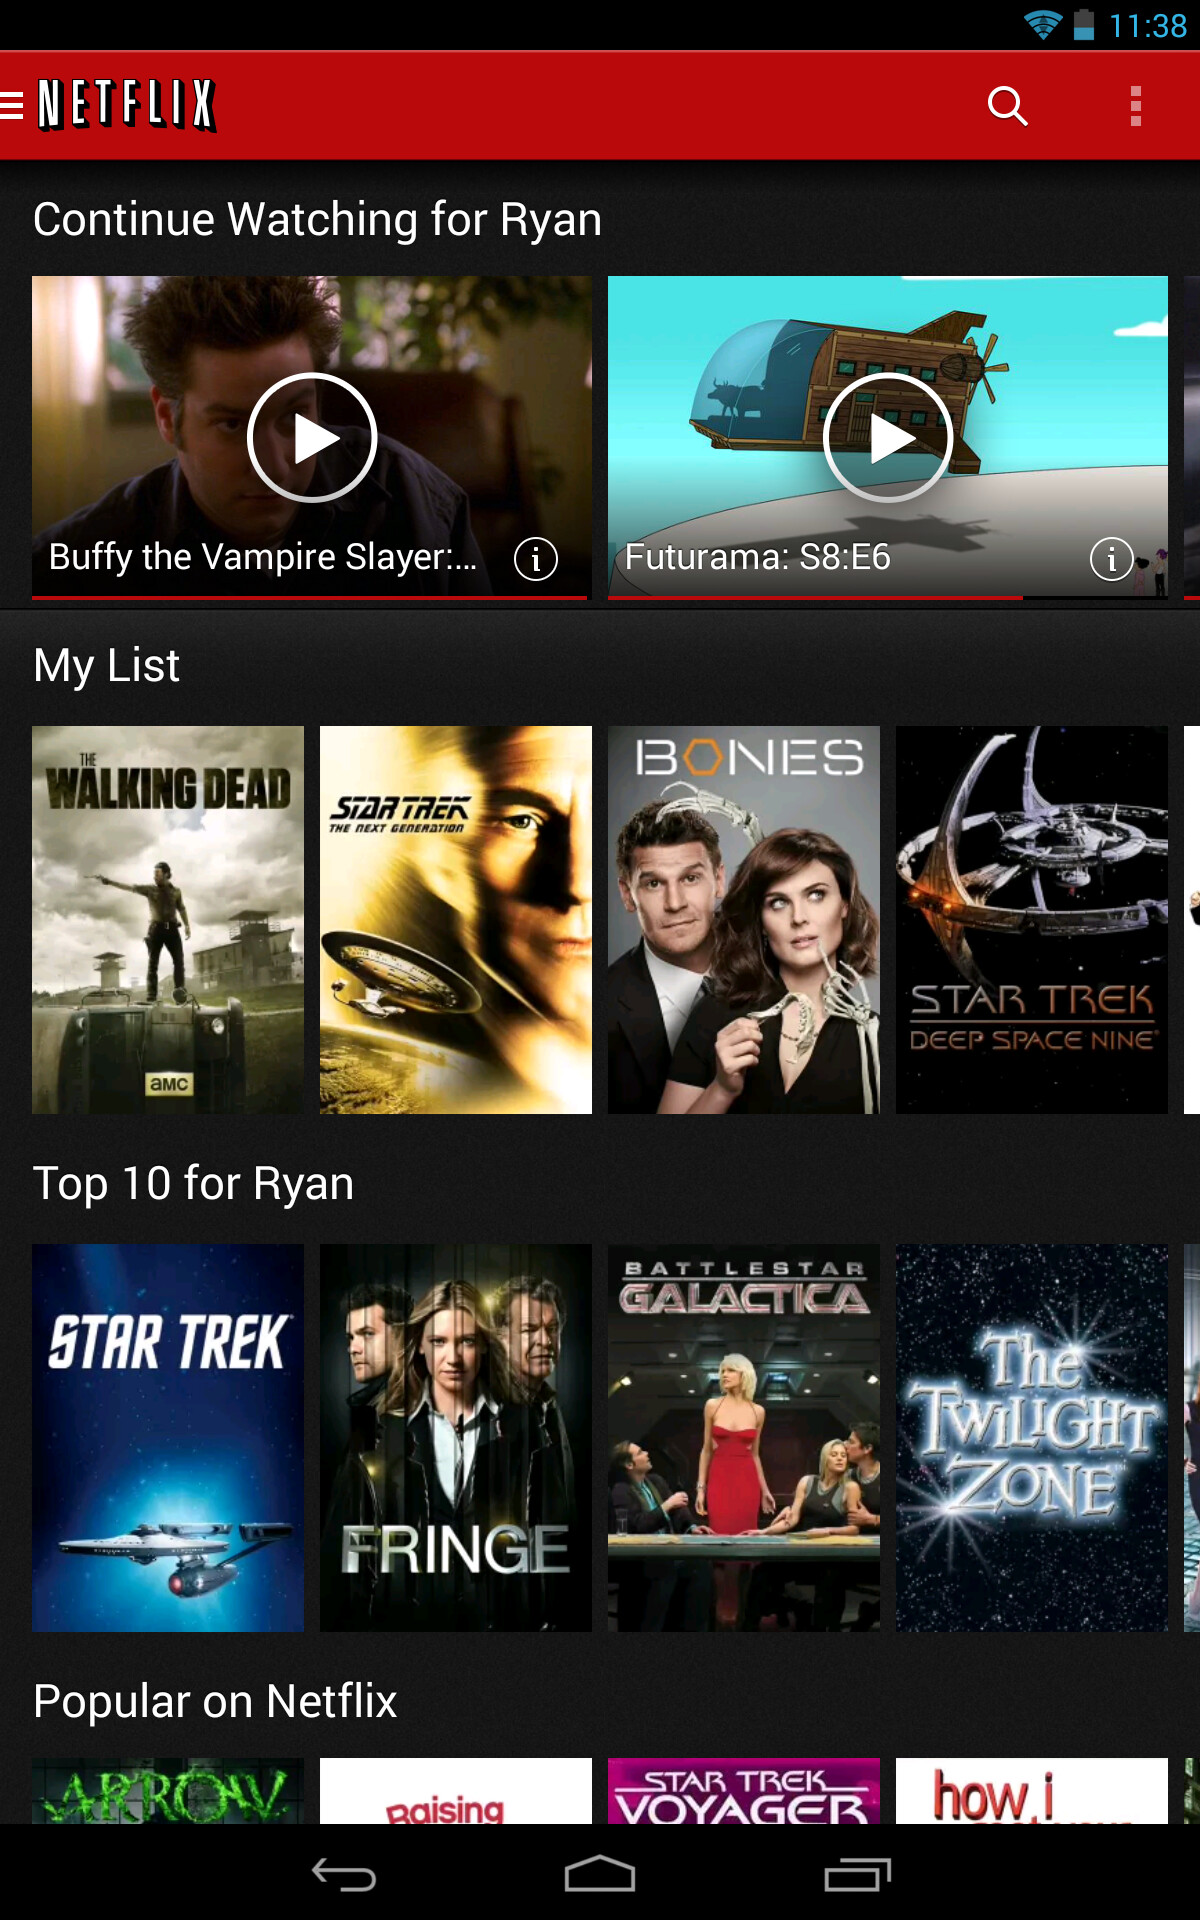 Netflix for Android gets update to speed up navigation